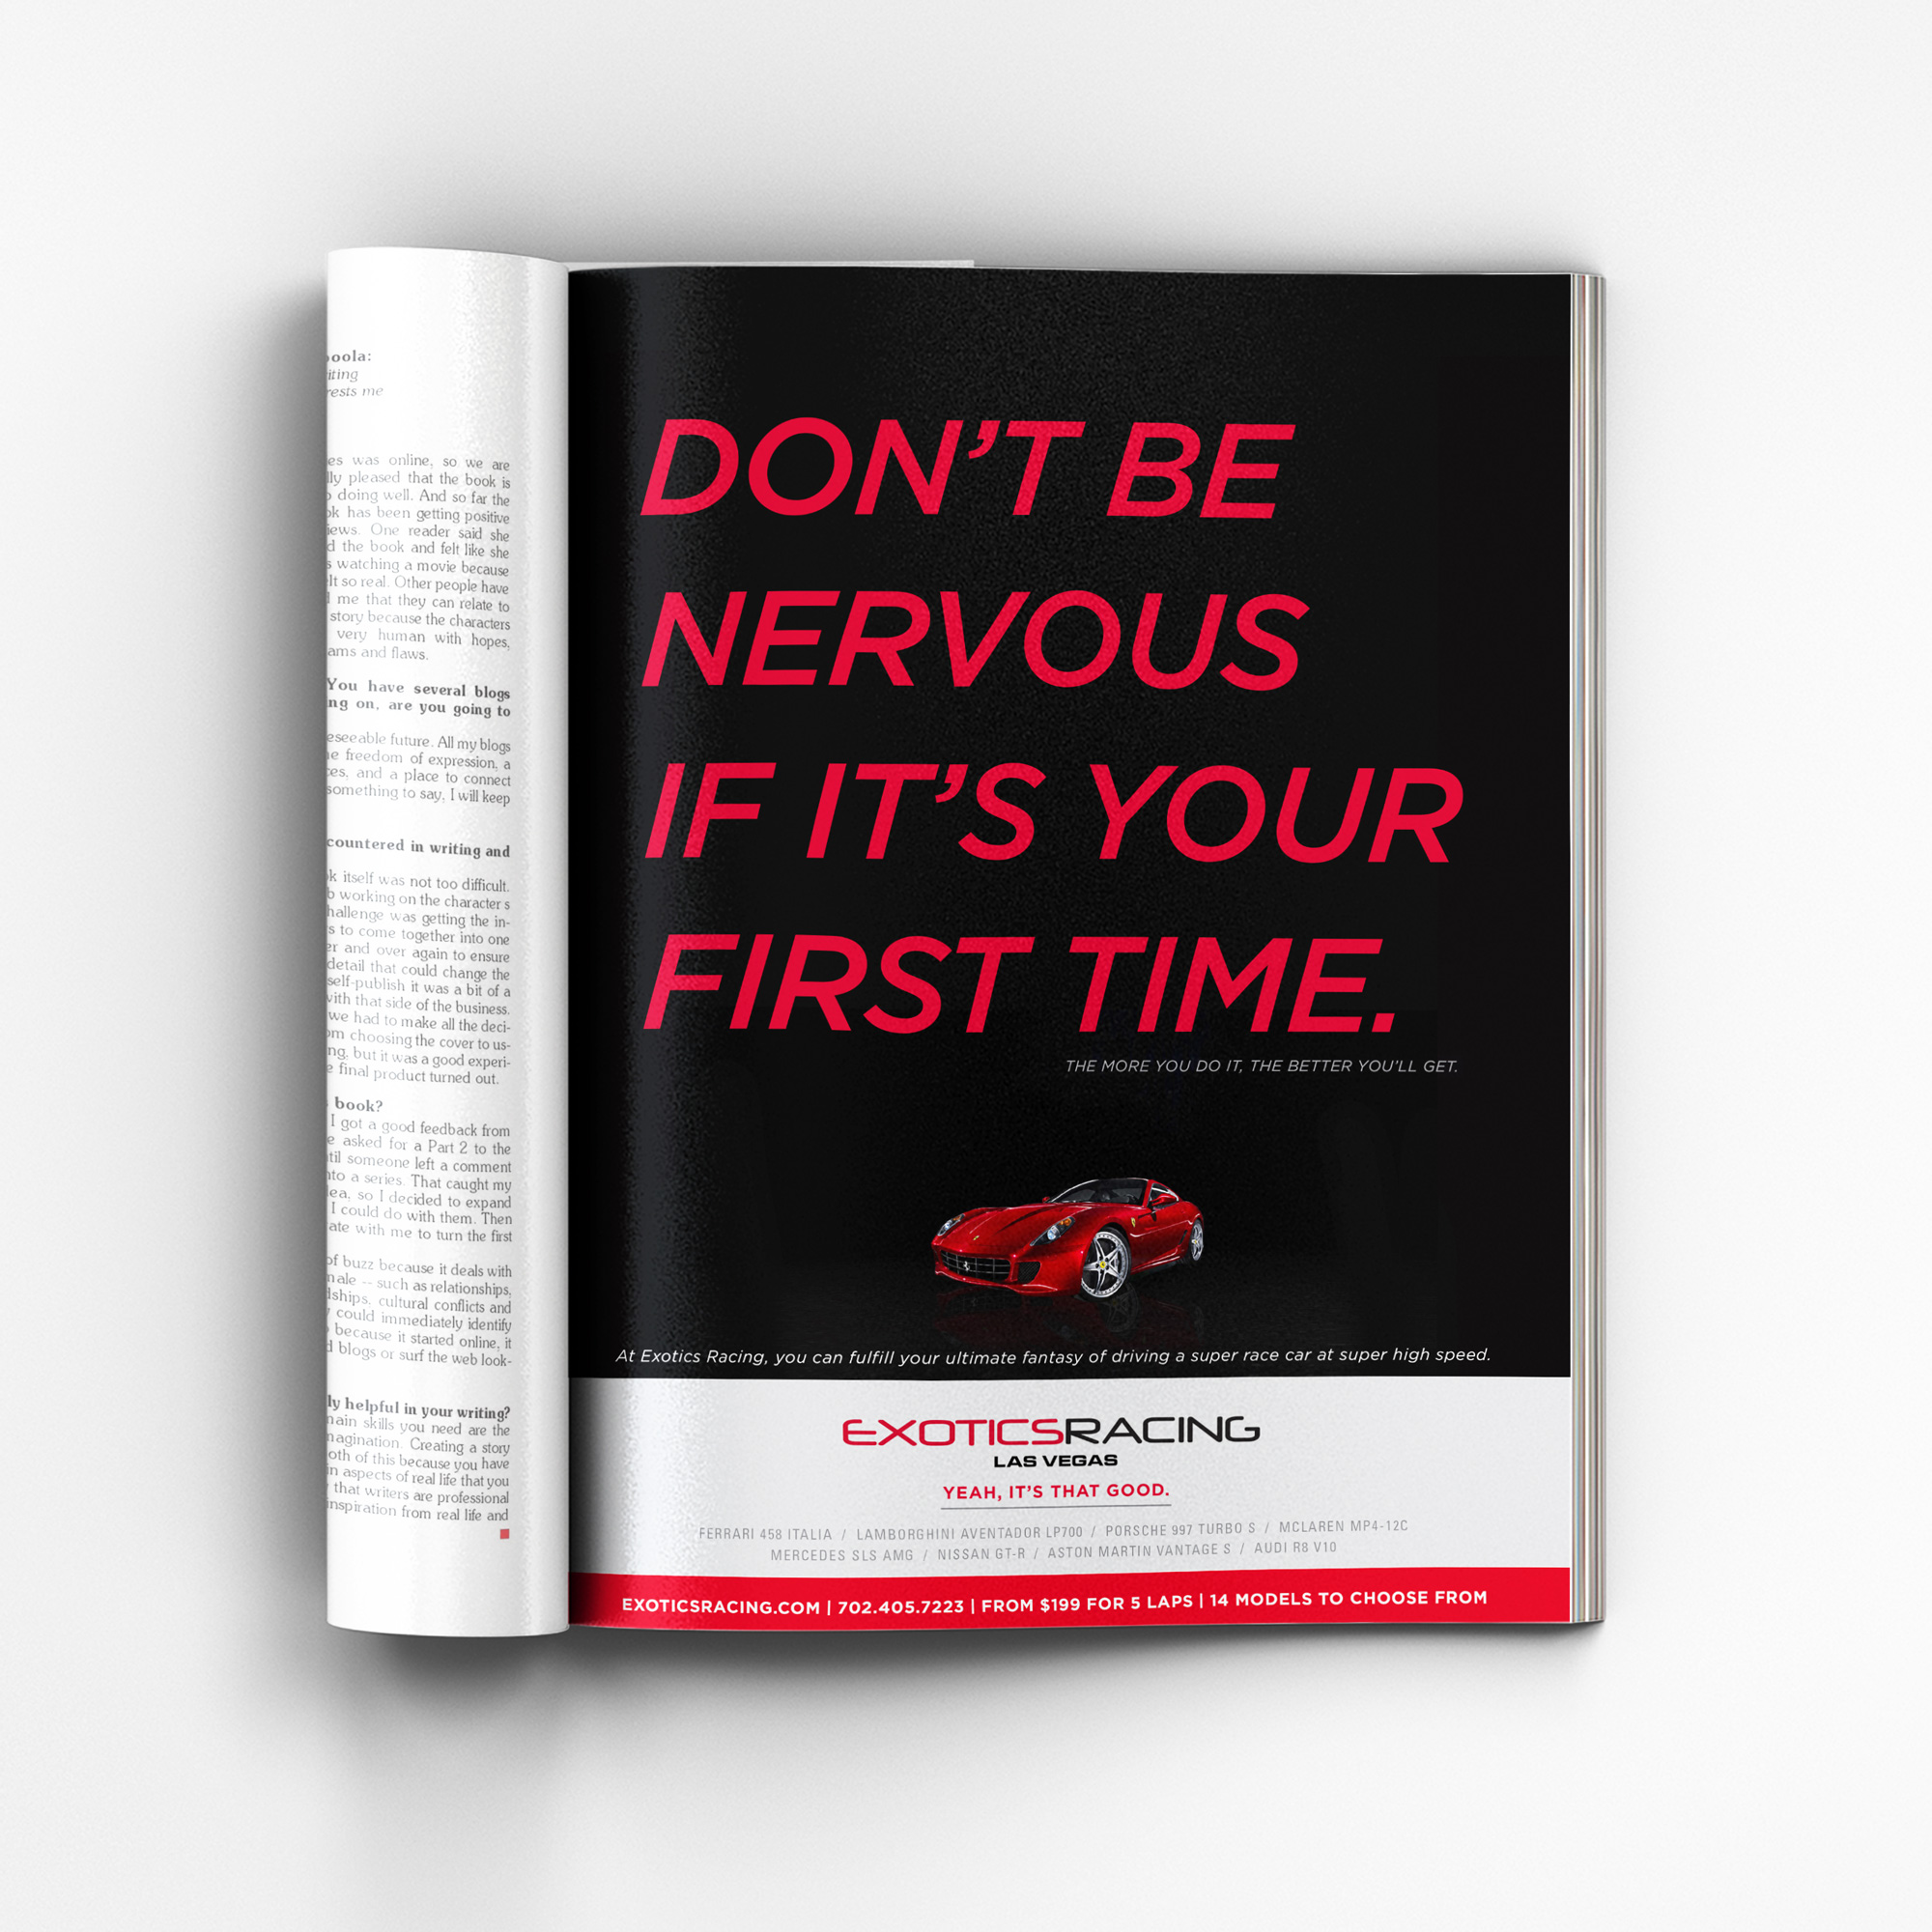 Magazine ad - nervous